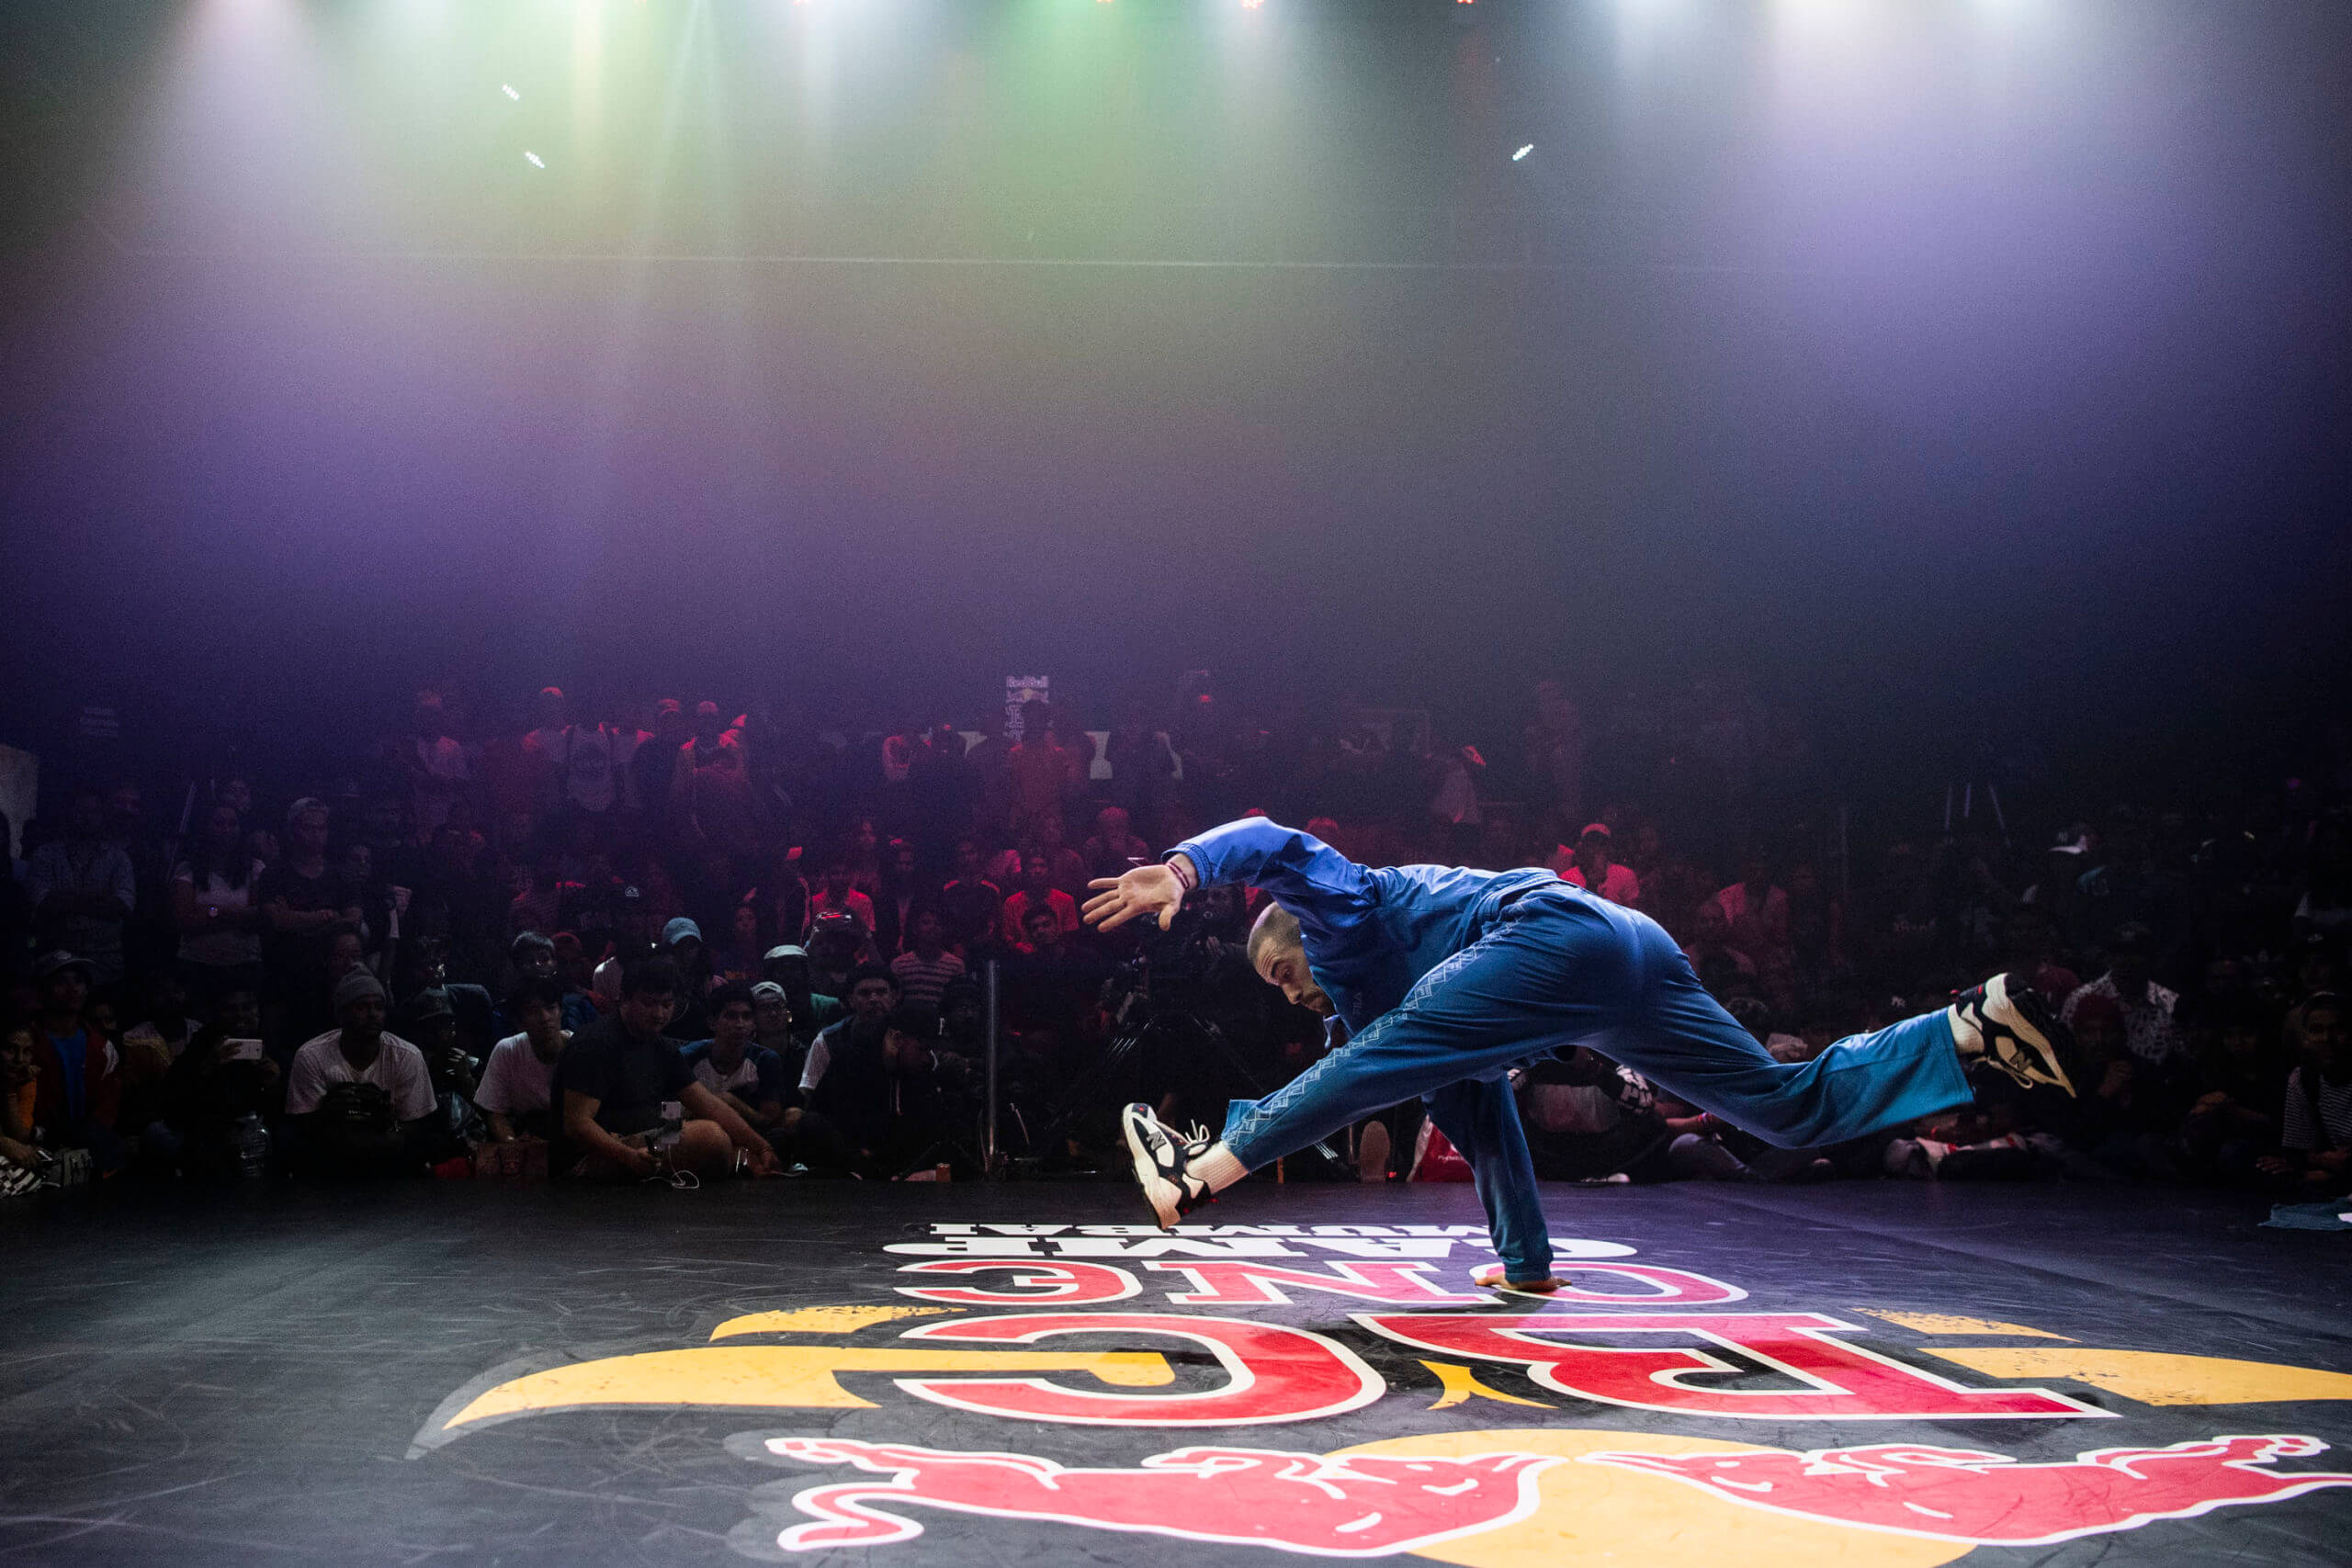 Breakdance-milano-ballerino-hiphop-danza-Pesto